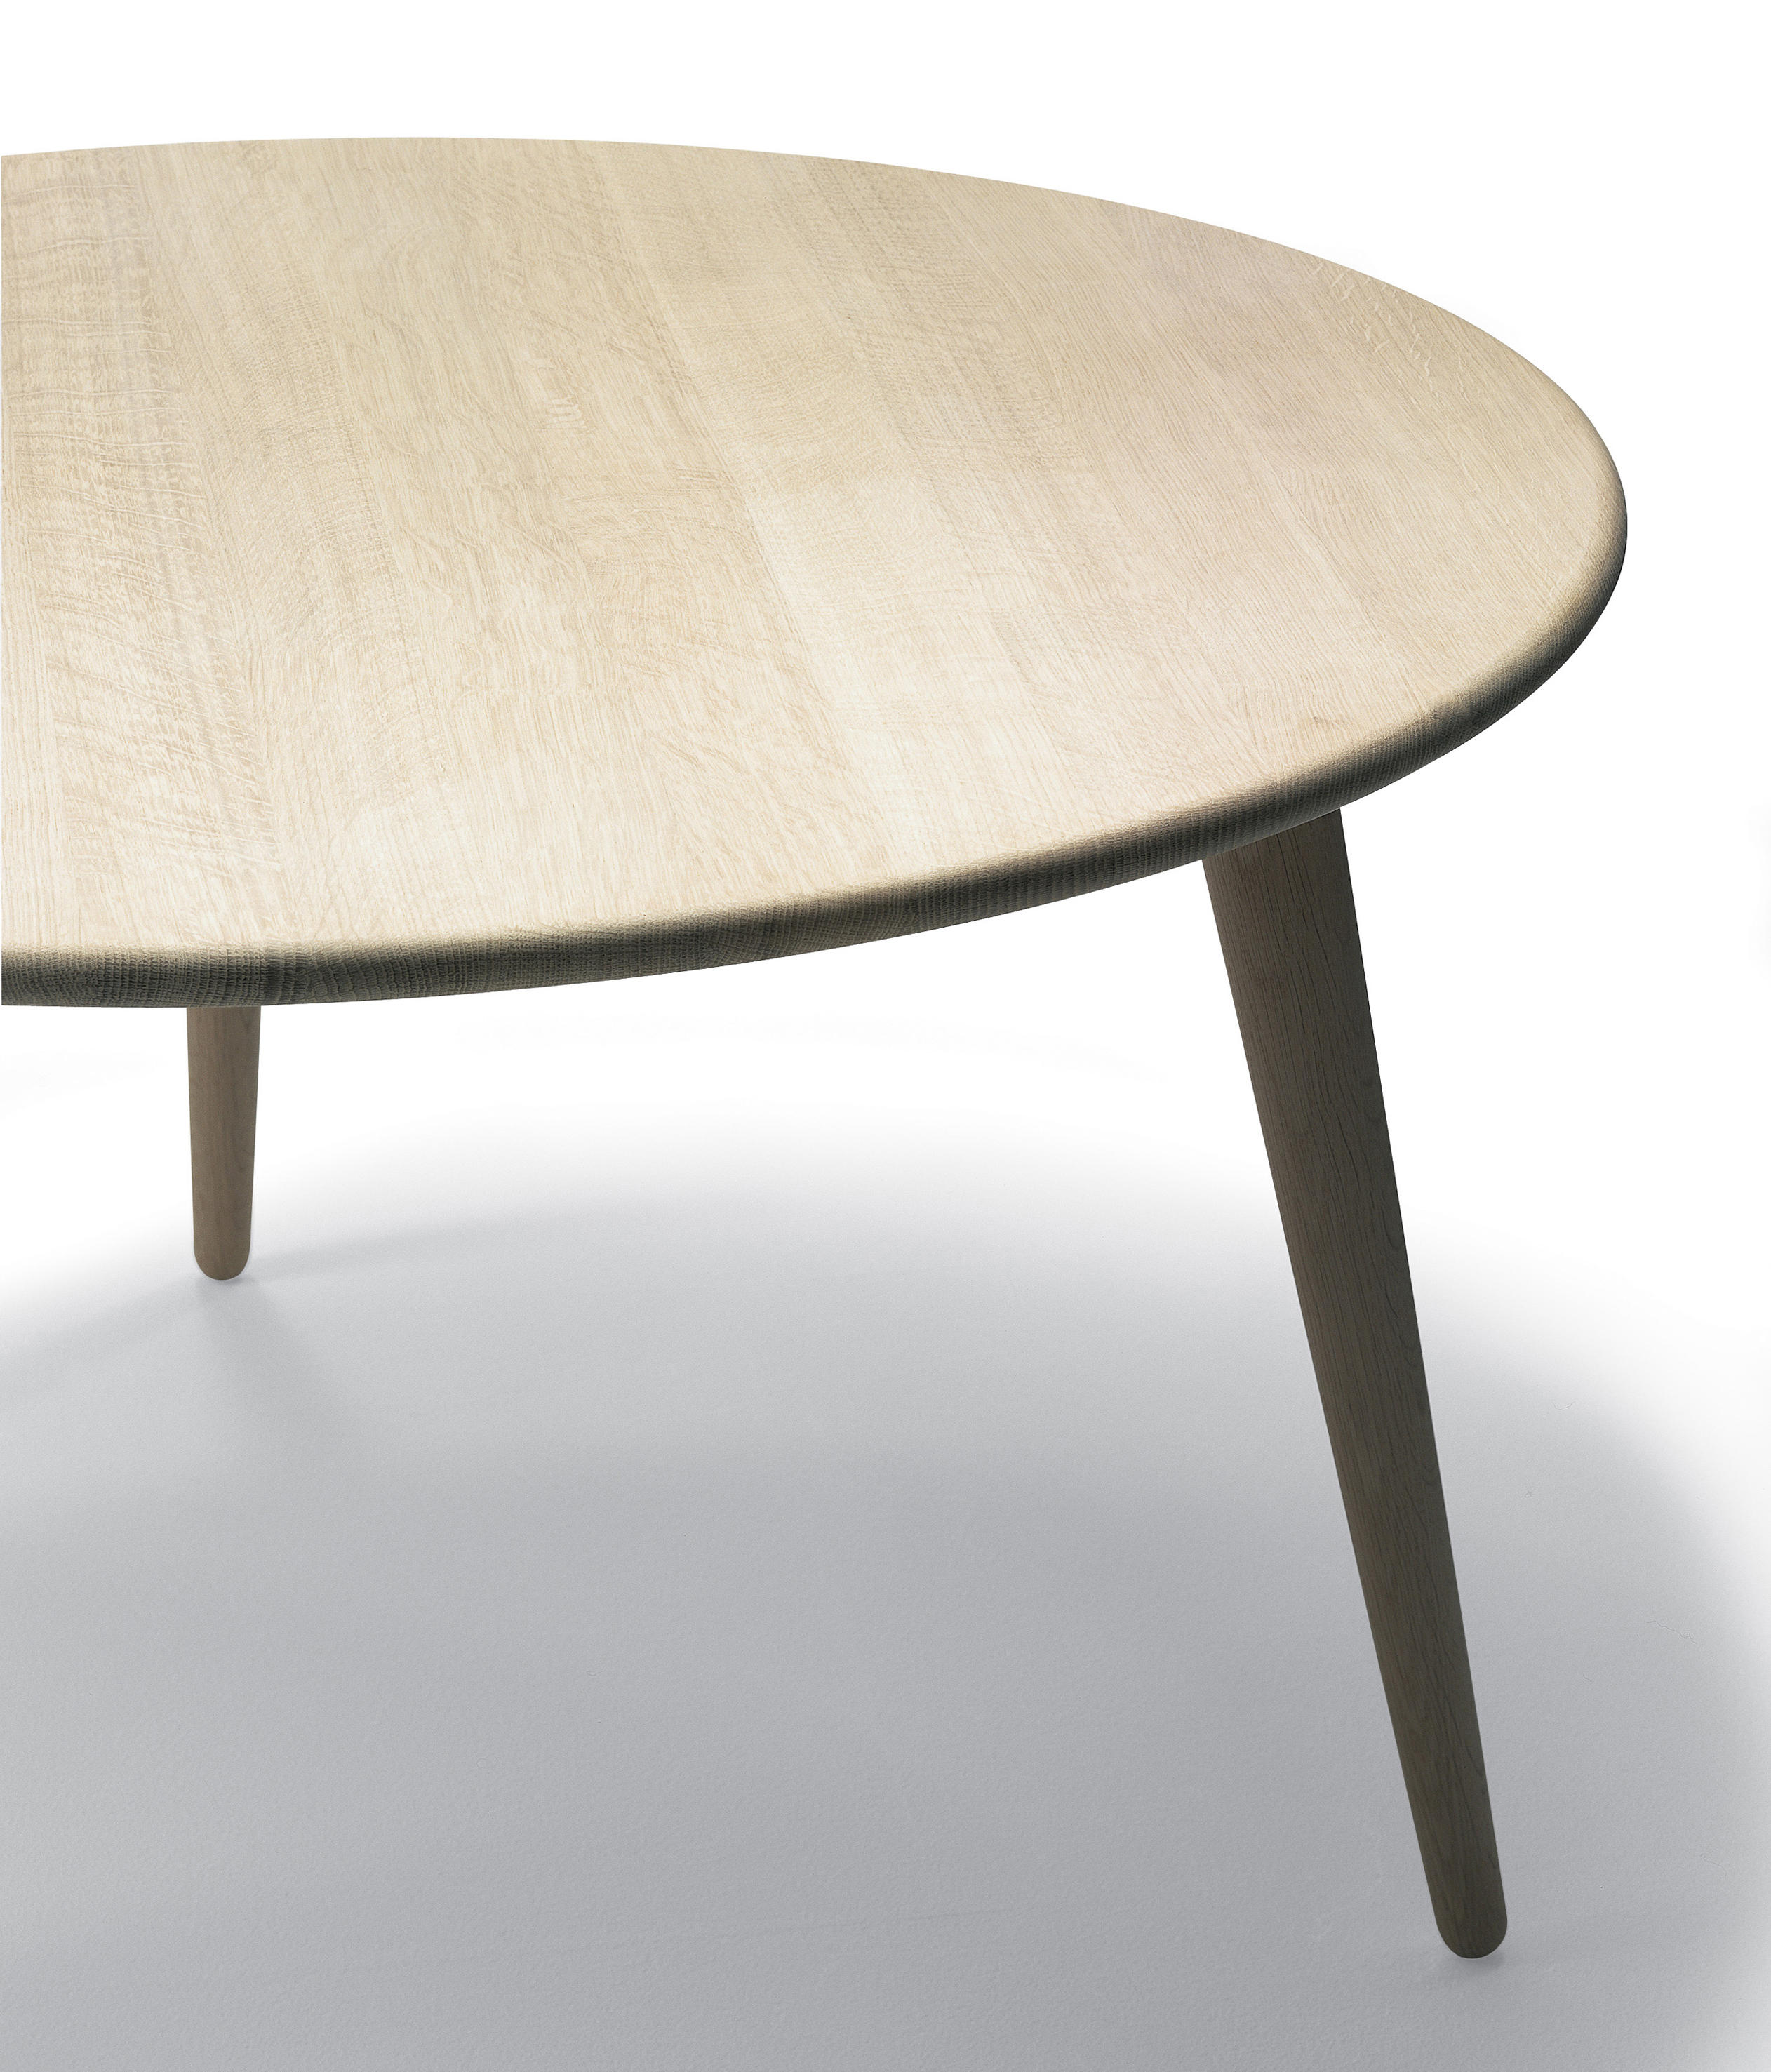 CH008 Lounge tables from Carl Hansen & S¸n